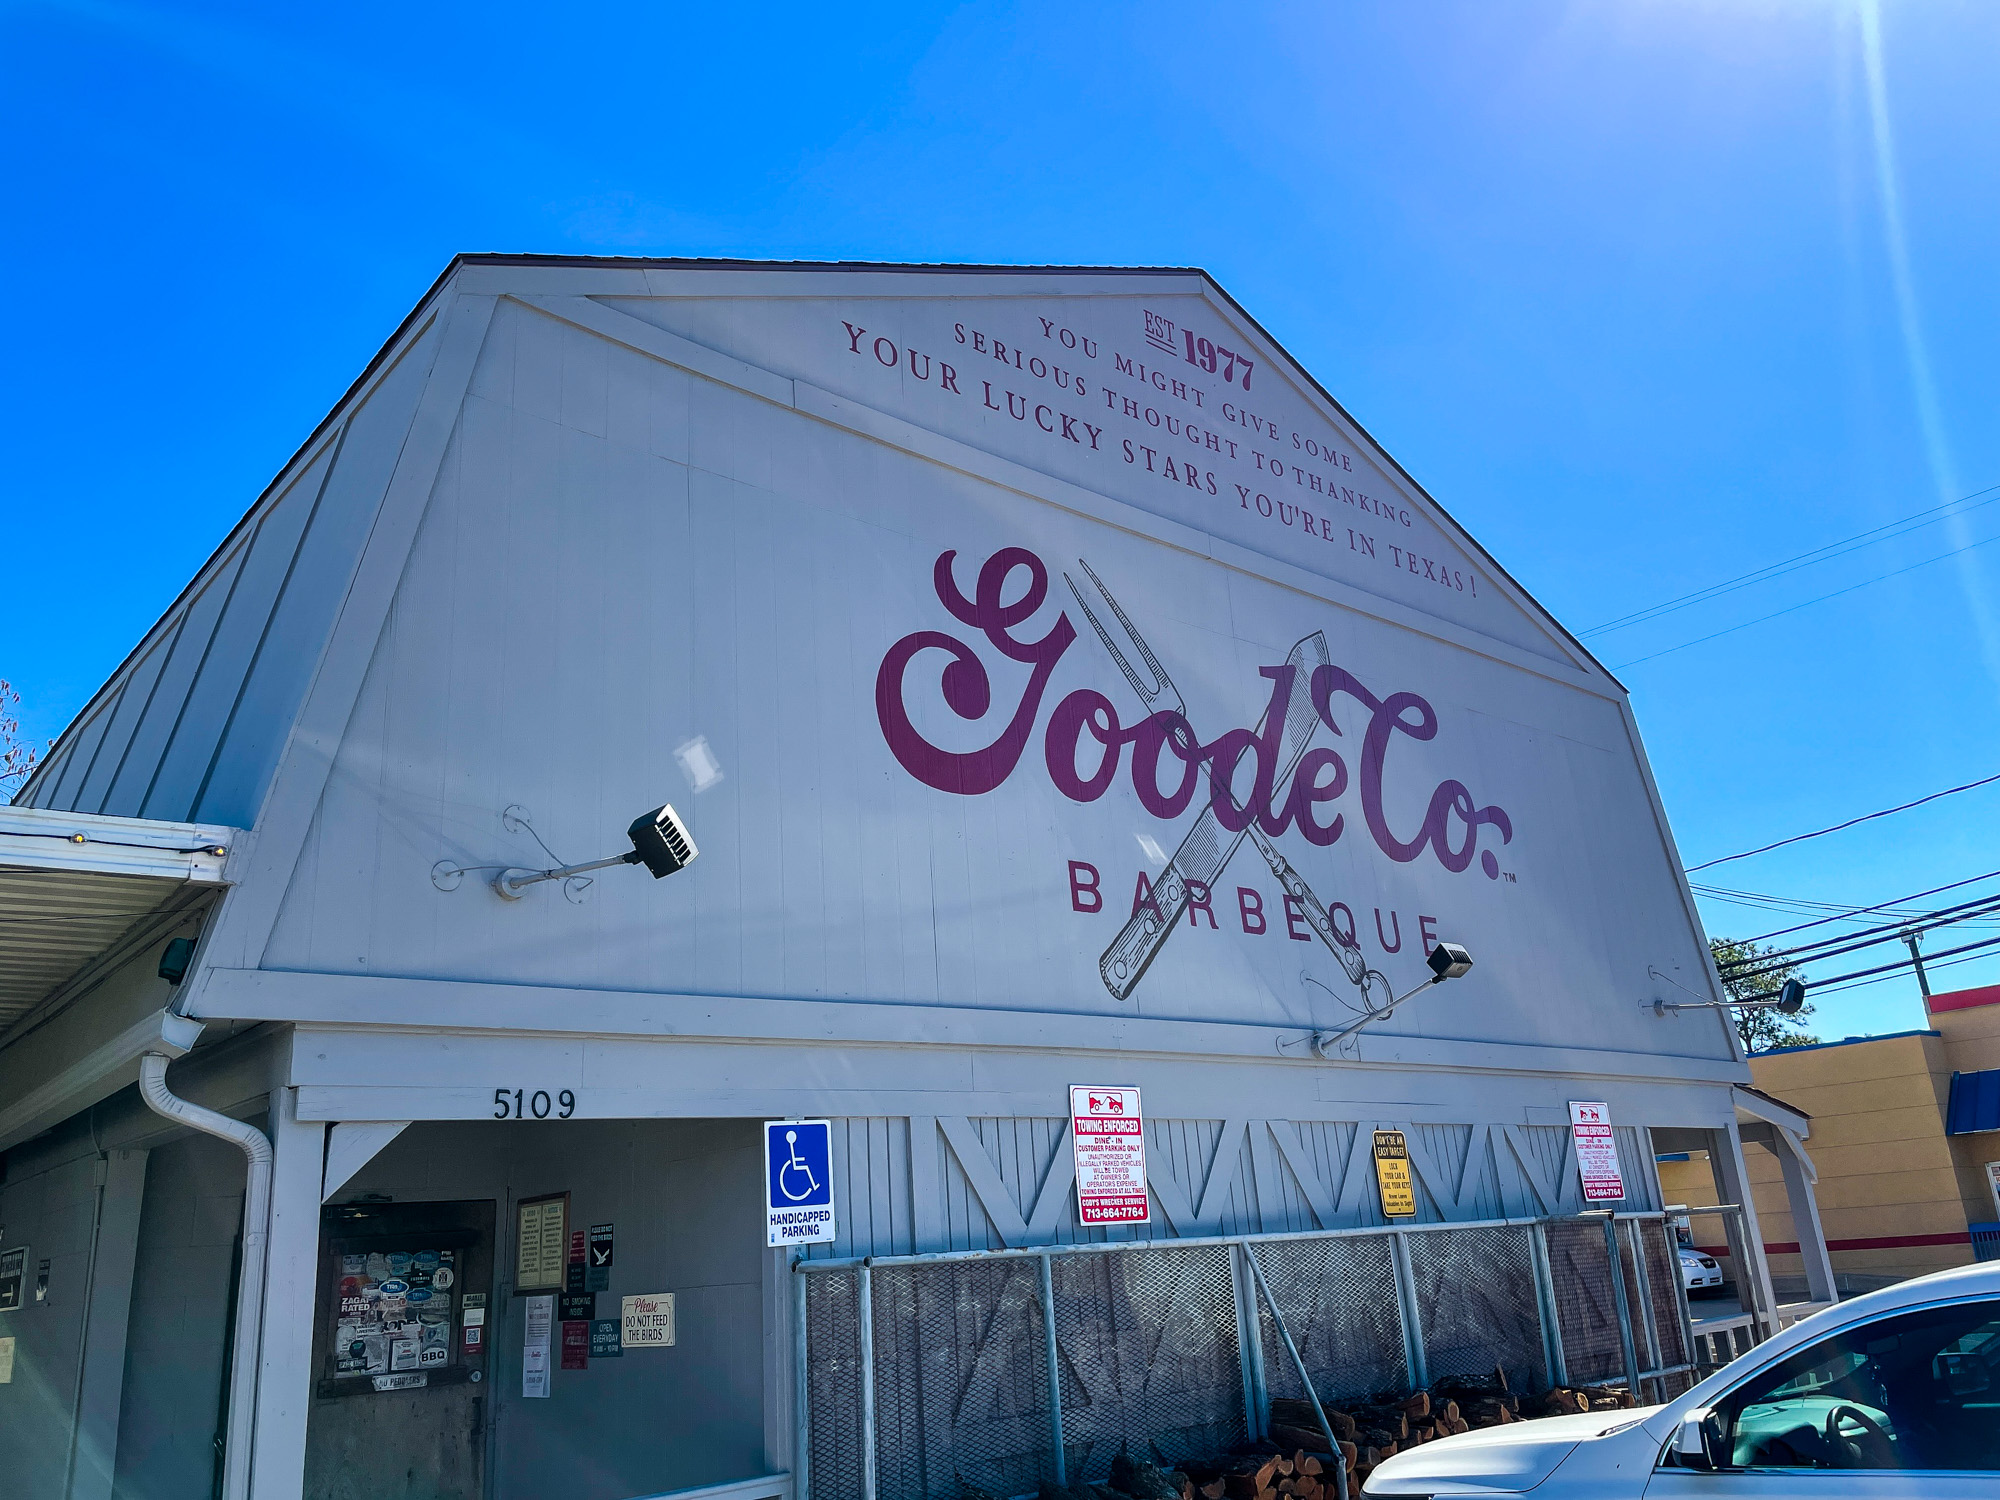 Goode Co. Barbeque - Kirby